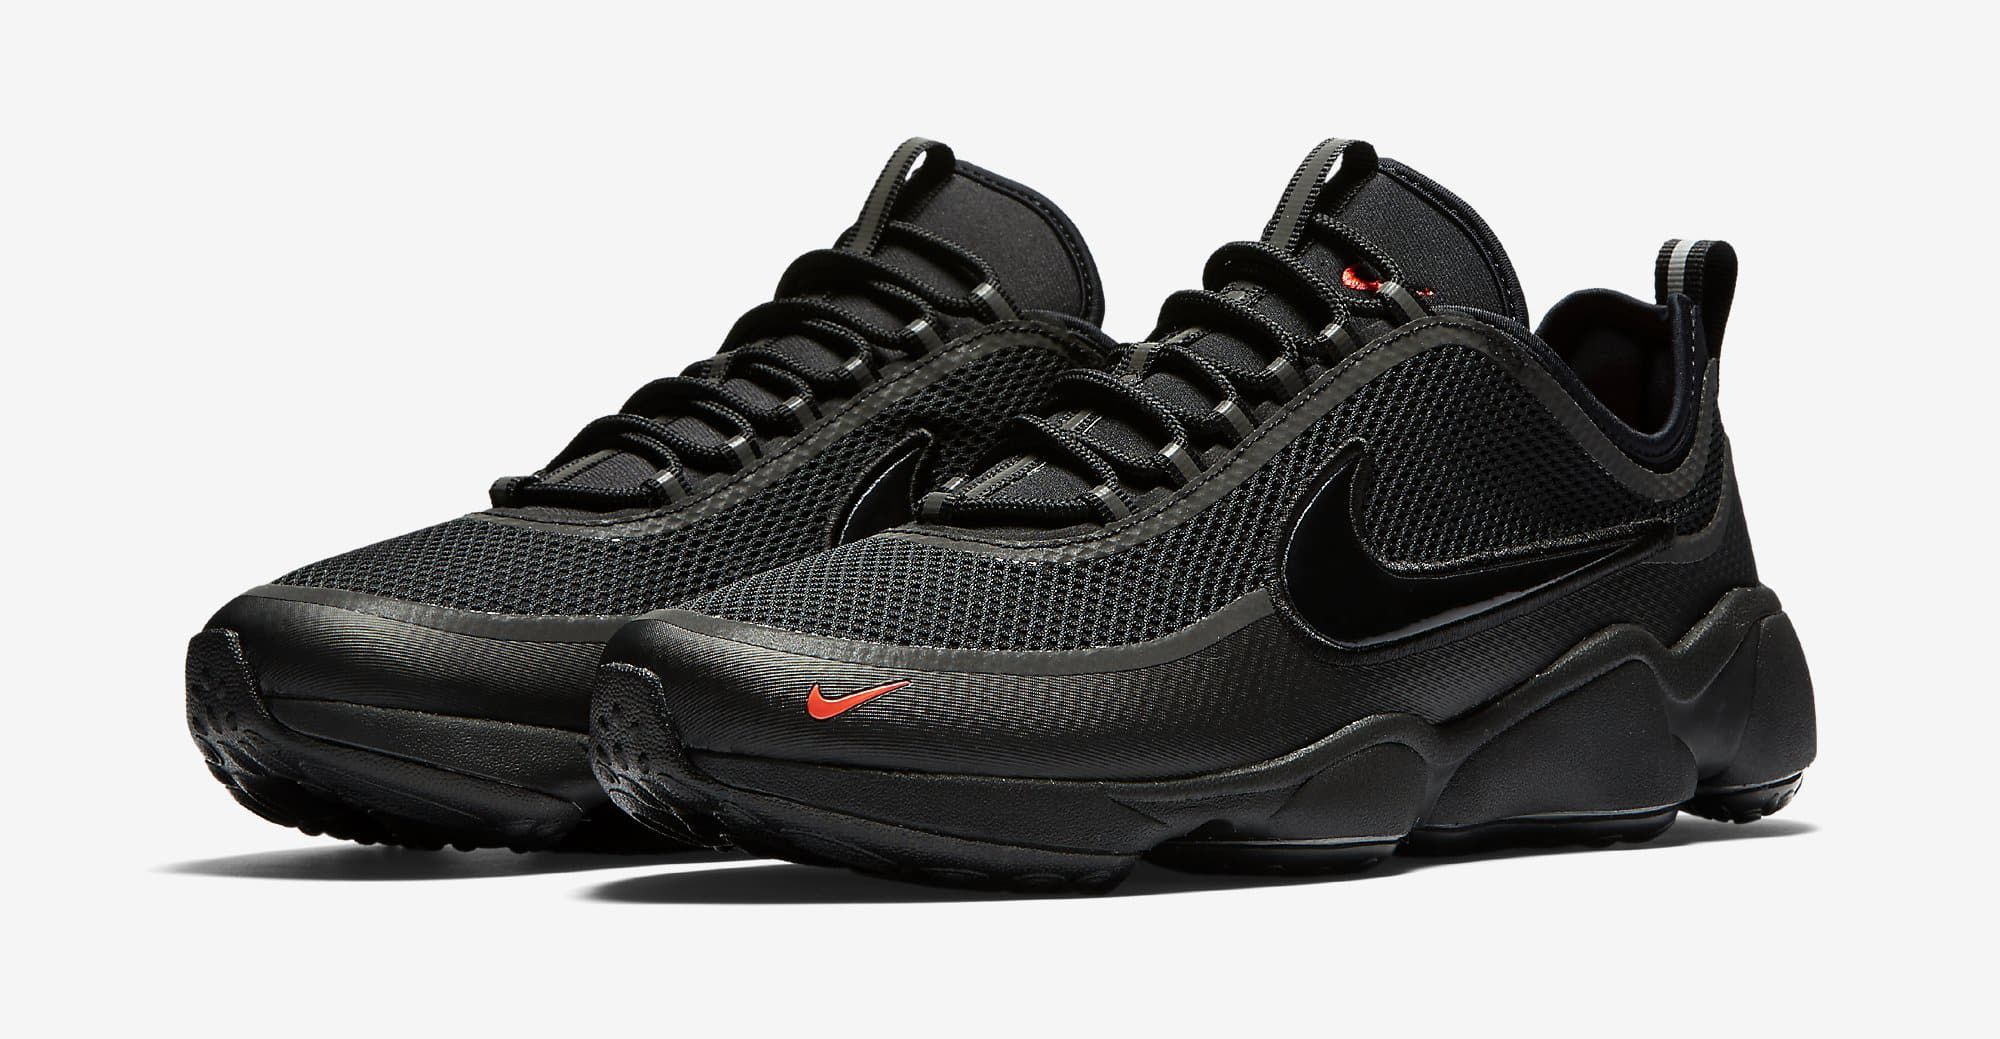 136bac975638c Kicks Deals – Official Website Nike Air Zoom Spiridon Ultra Black ...